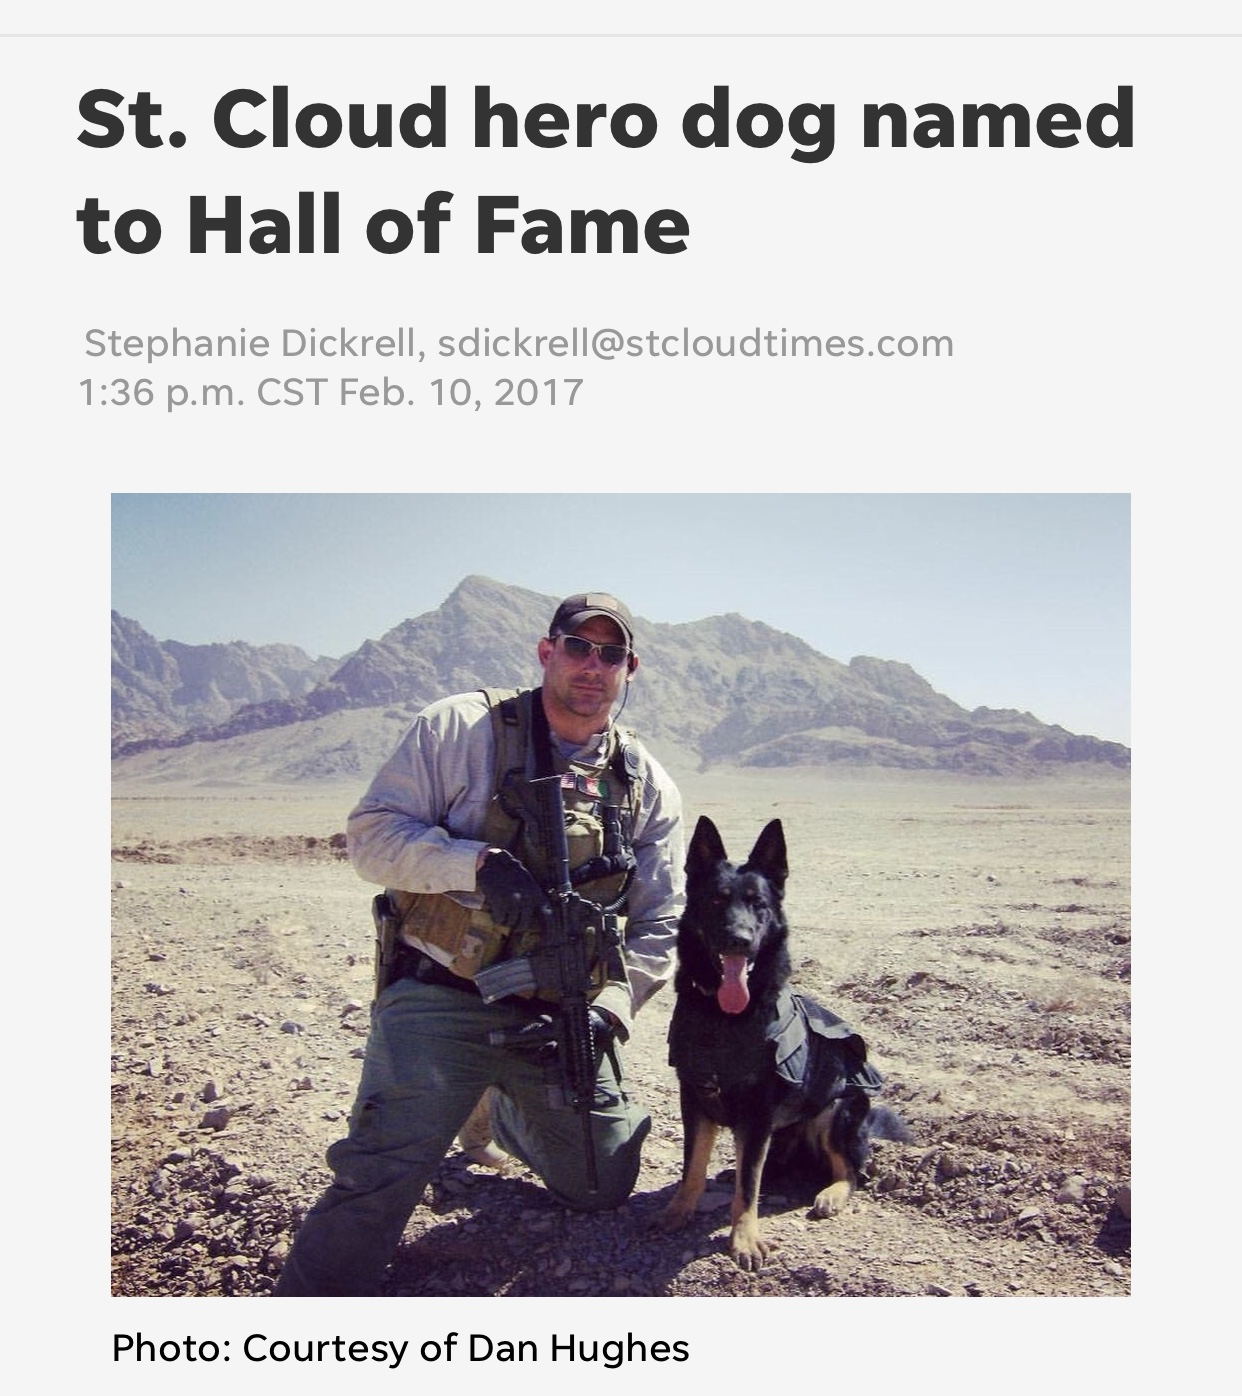 St. Cloud Times - A St. Cloud dog will receive a hero award and be inducted into a hall of fame in honor of his work supporting the military.K-9 Adak will be recognized at the annual convention of the Minnesota Veterinary Medical Association later this month.